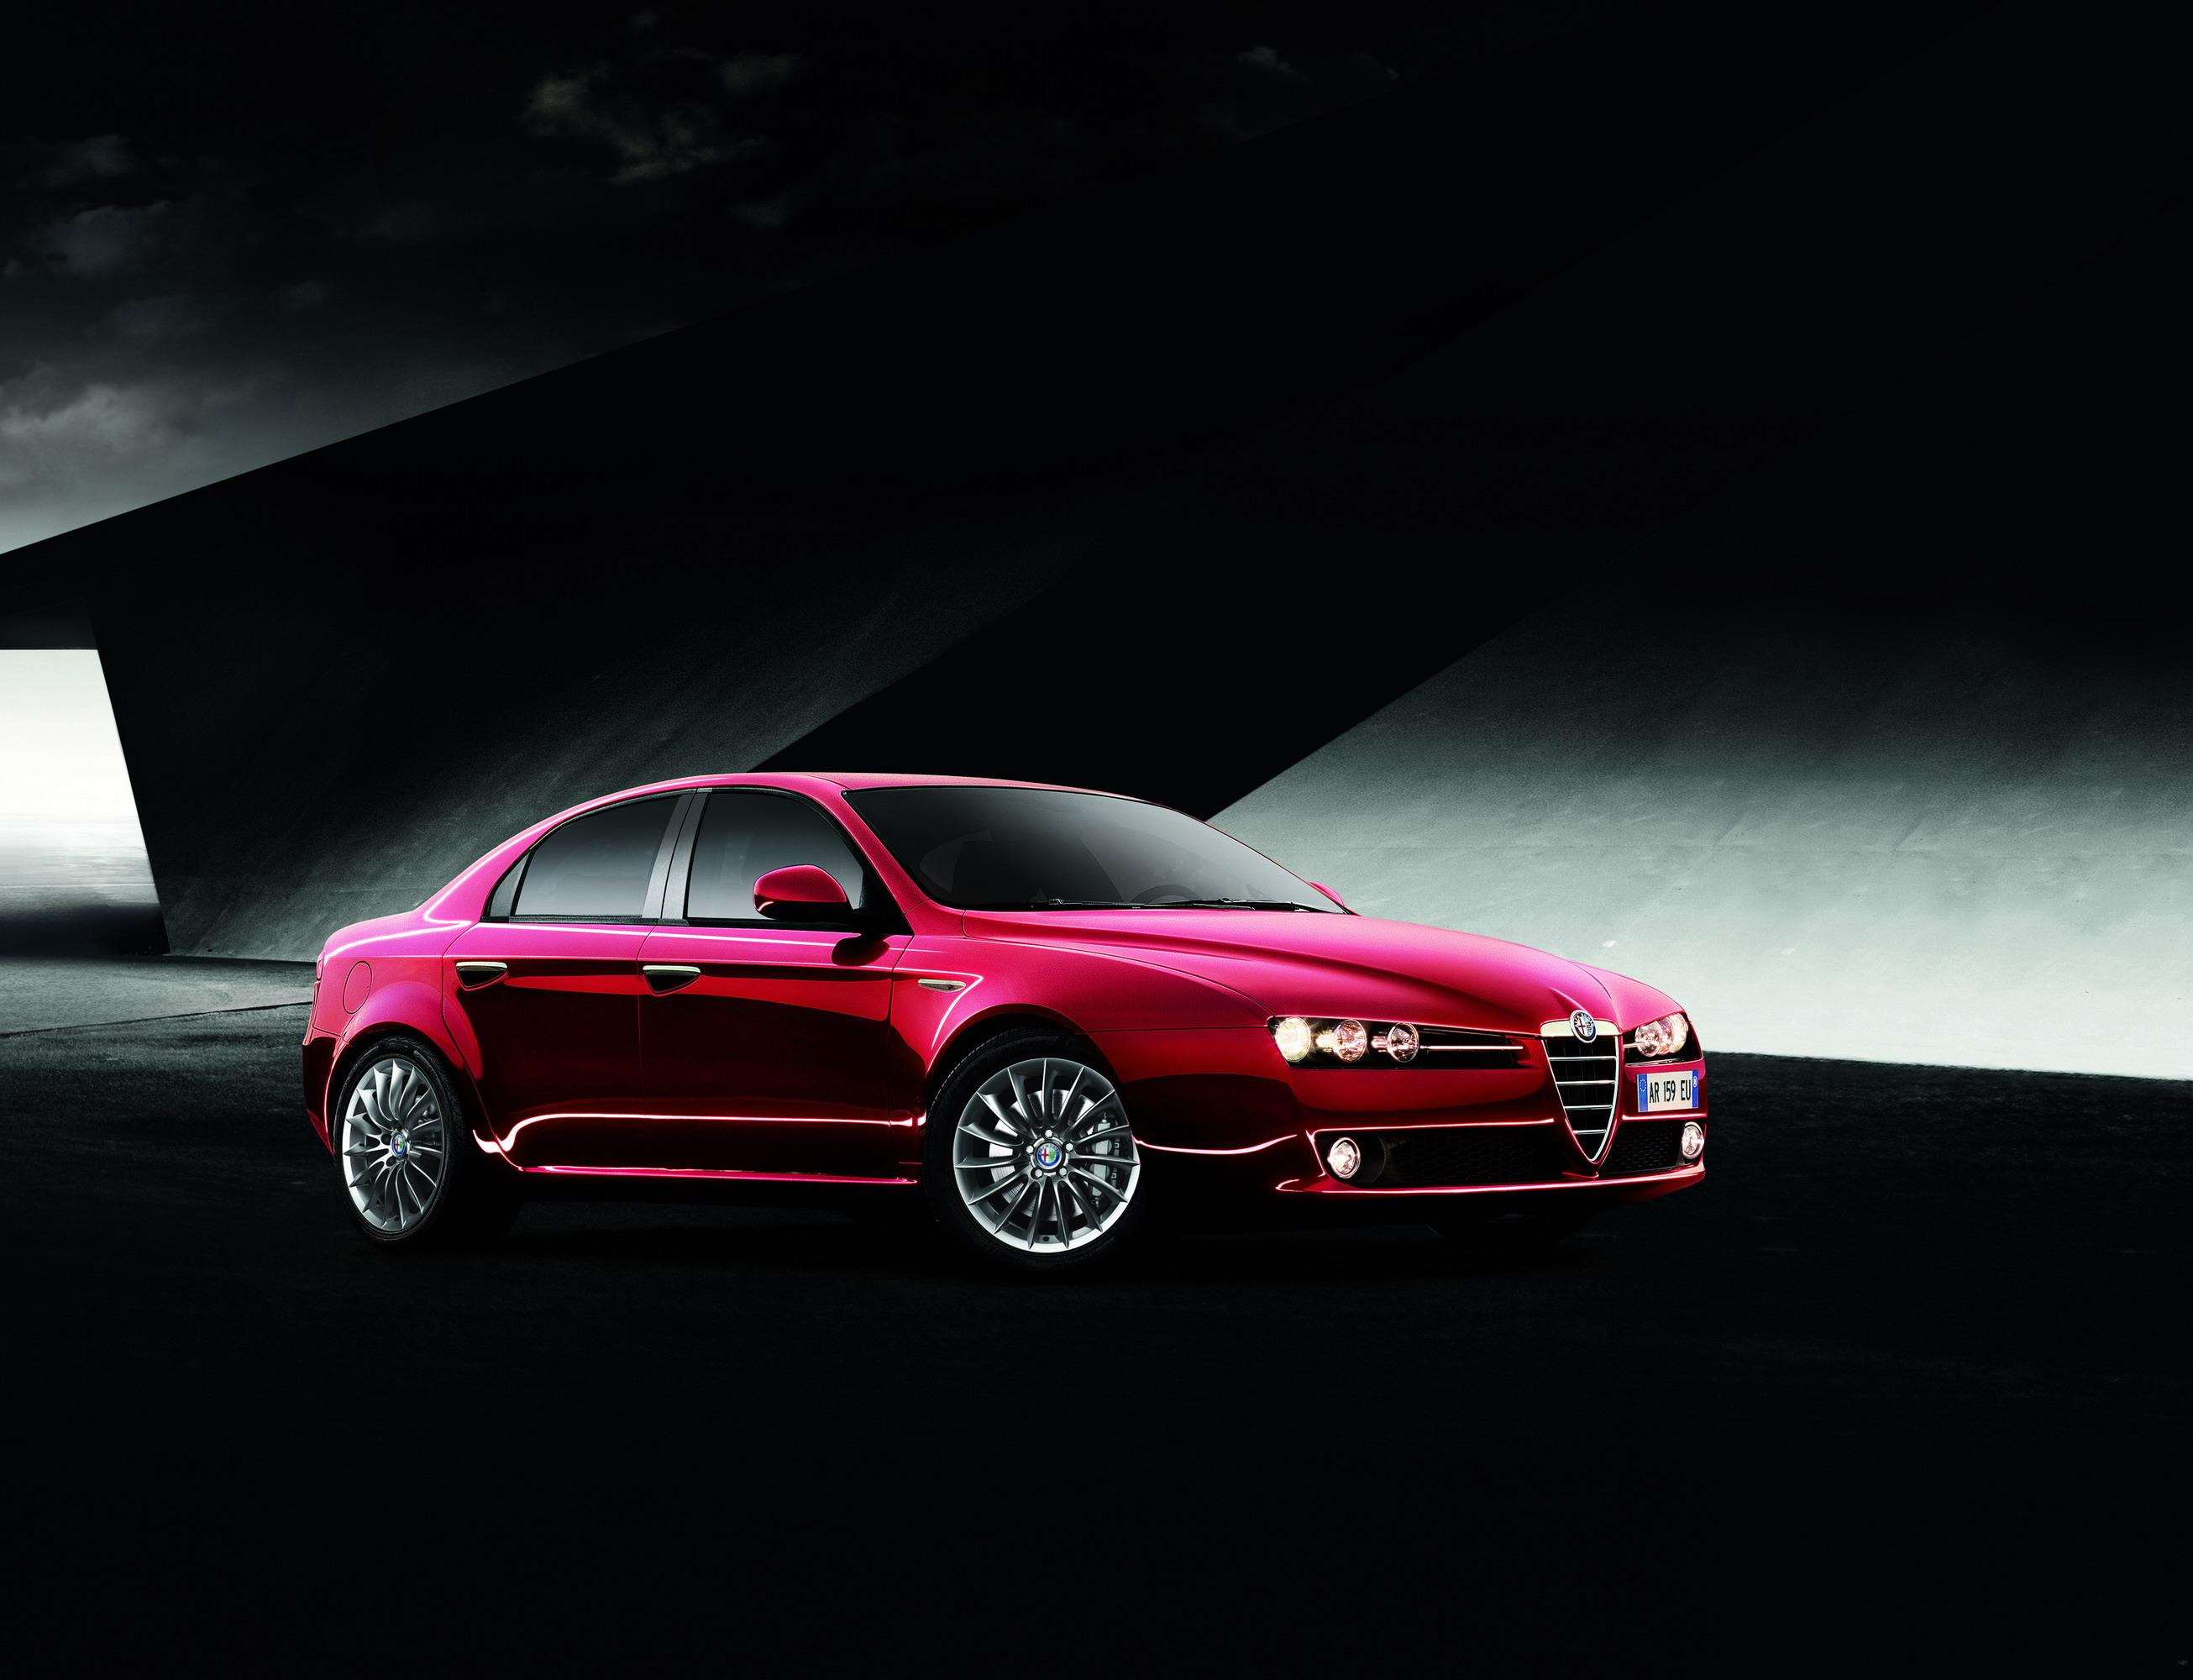 Alfa Romeo 159 Reviews Specs Prices Photos And Videos Top Speed Ignition Timing